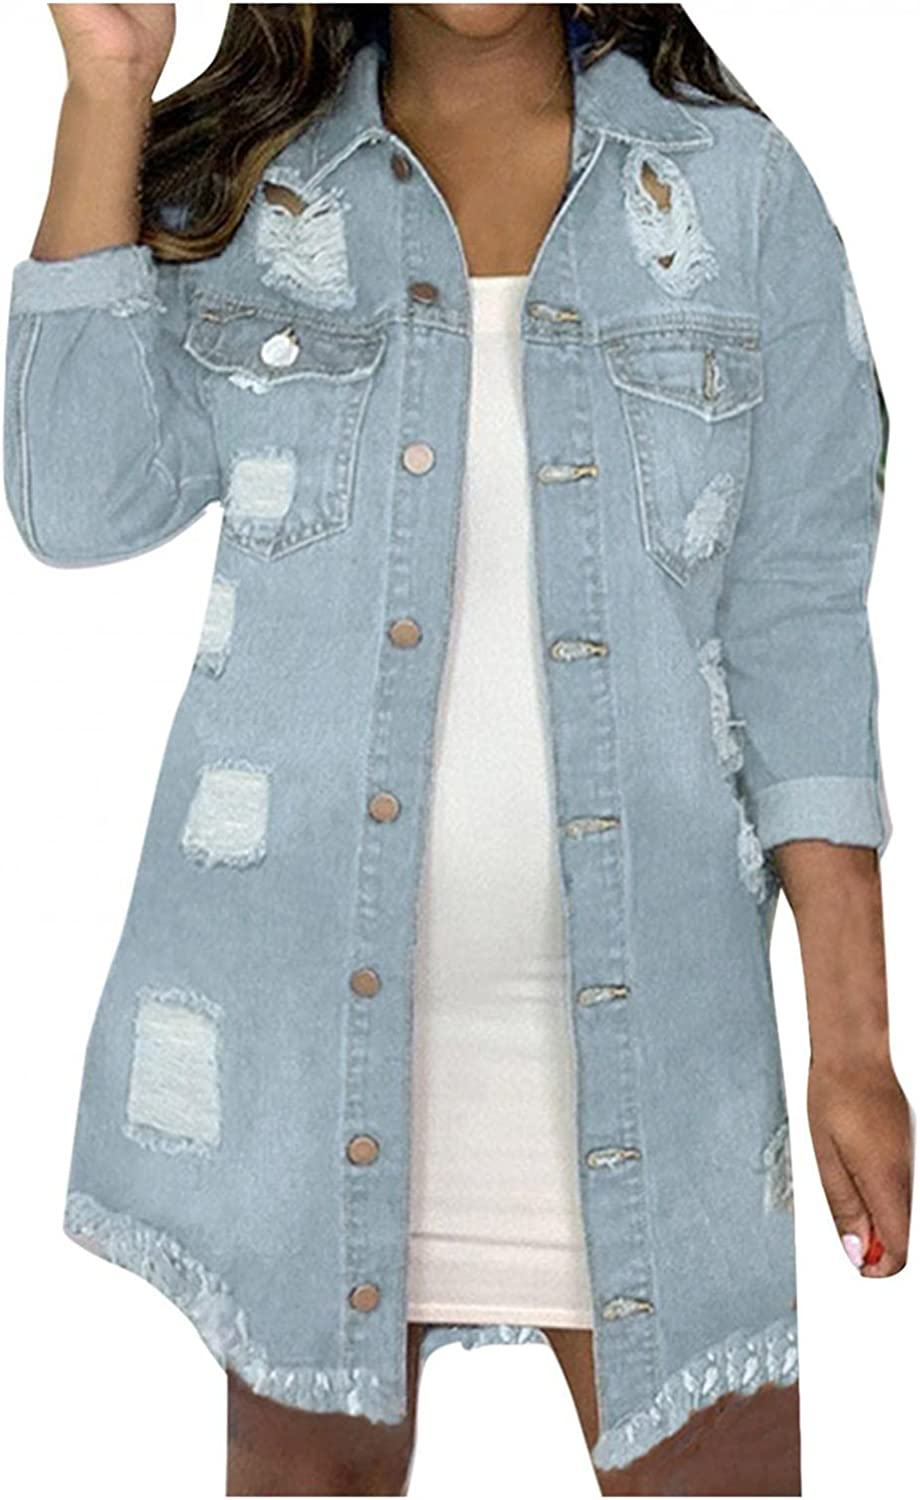 SUIQU Women's Casual Distressed Denim Jacket Hem Low Ripped Same day shipping Milwaukee Mall High